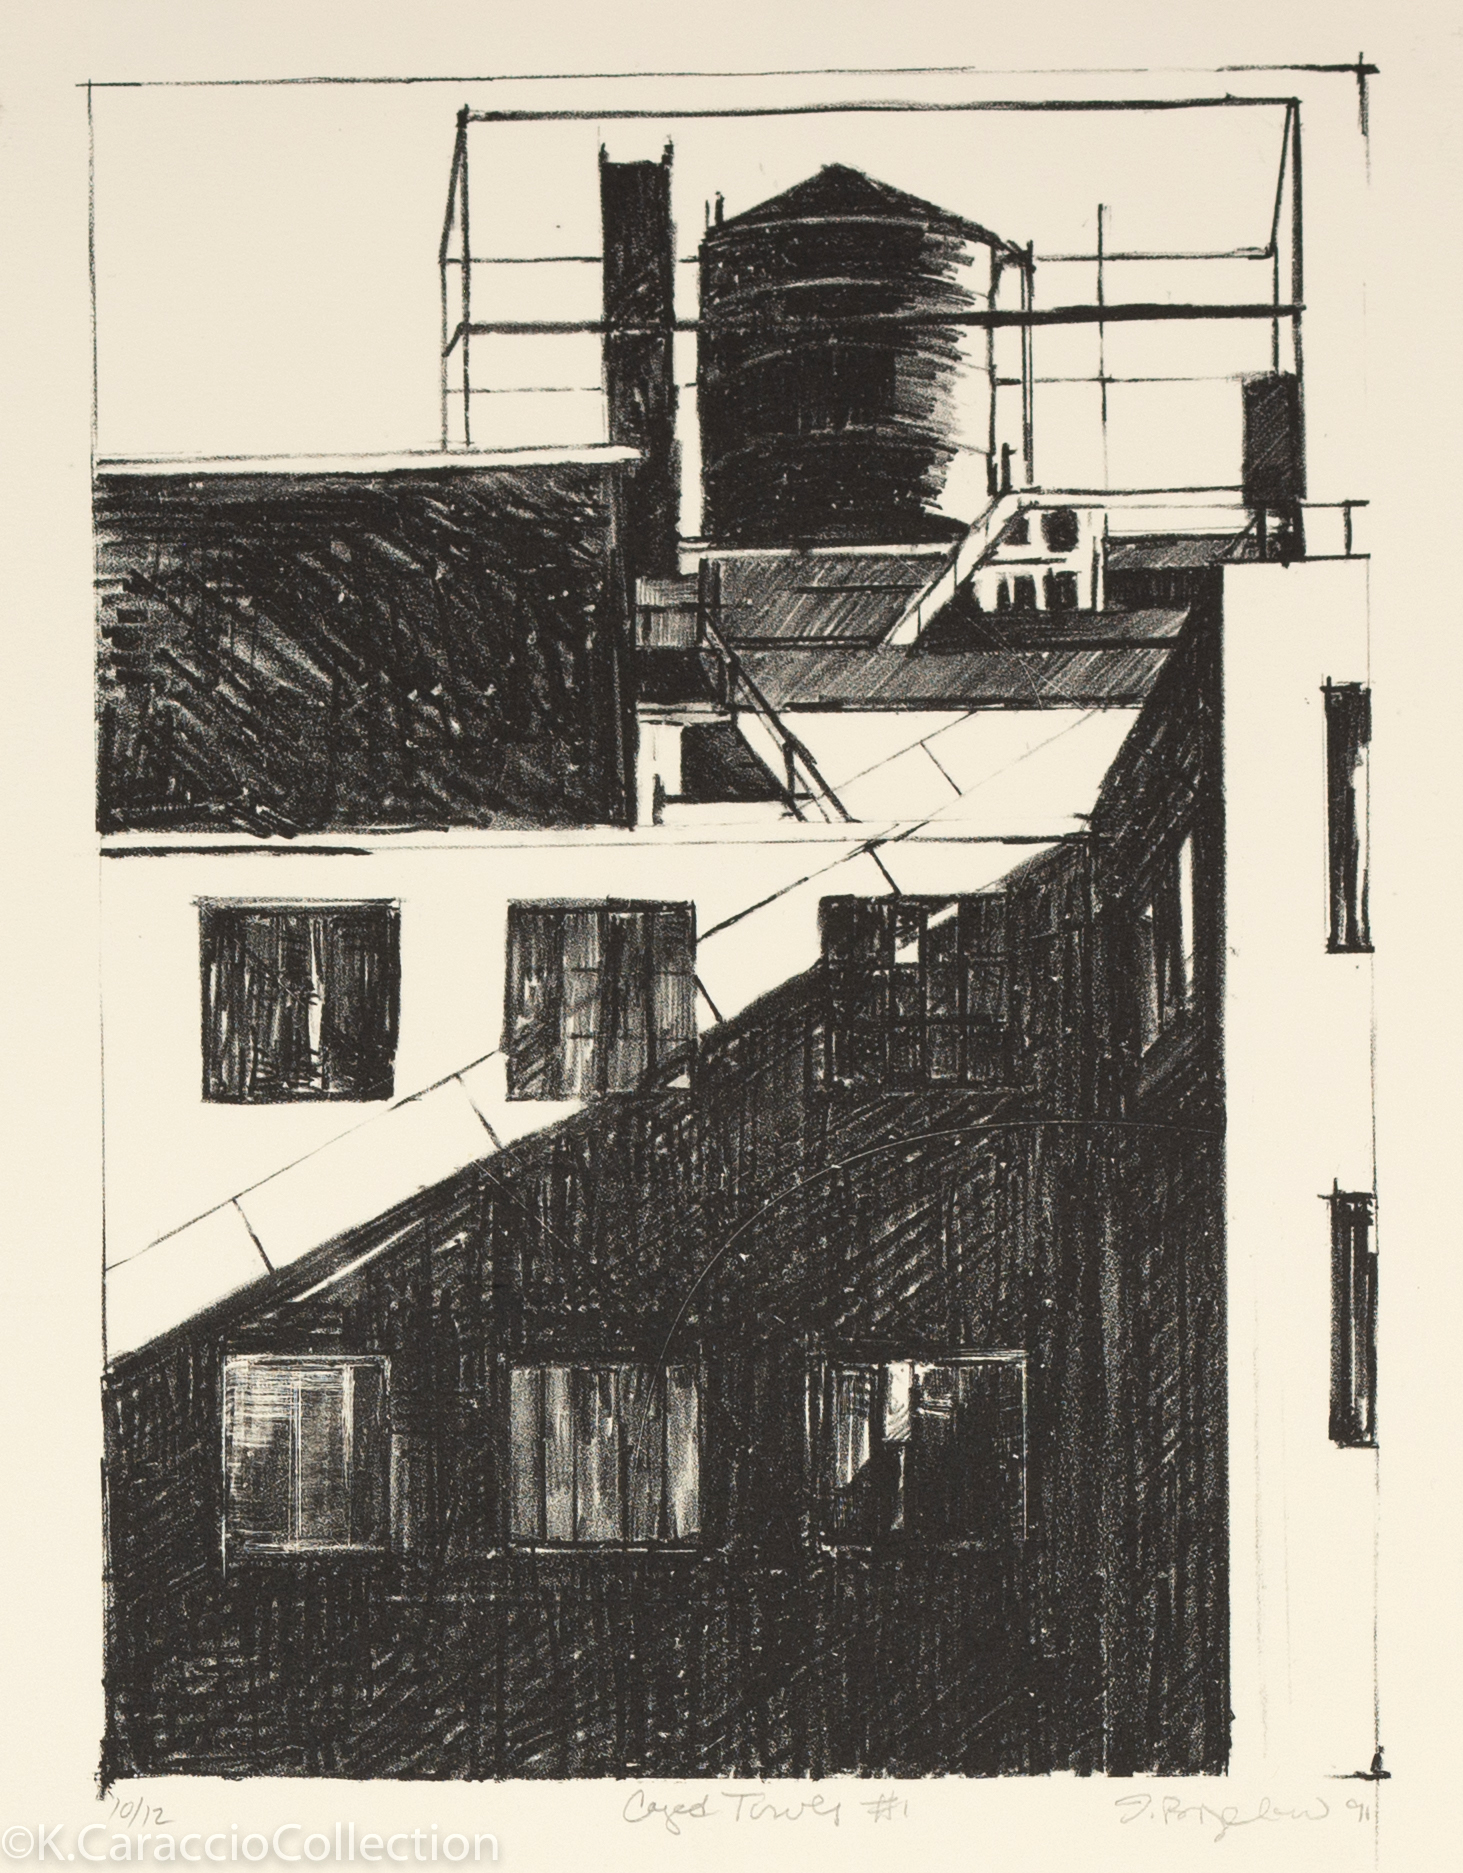 Caged Tower #1, 1991